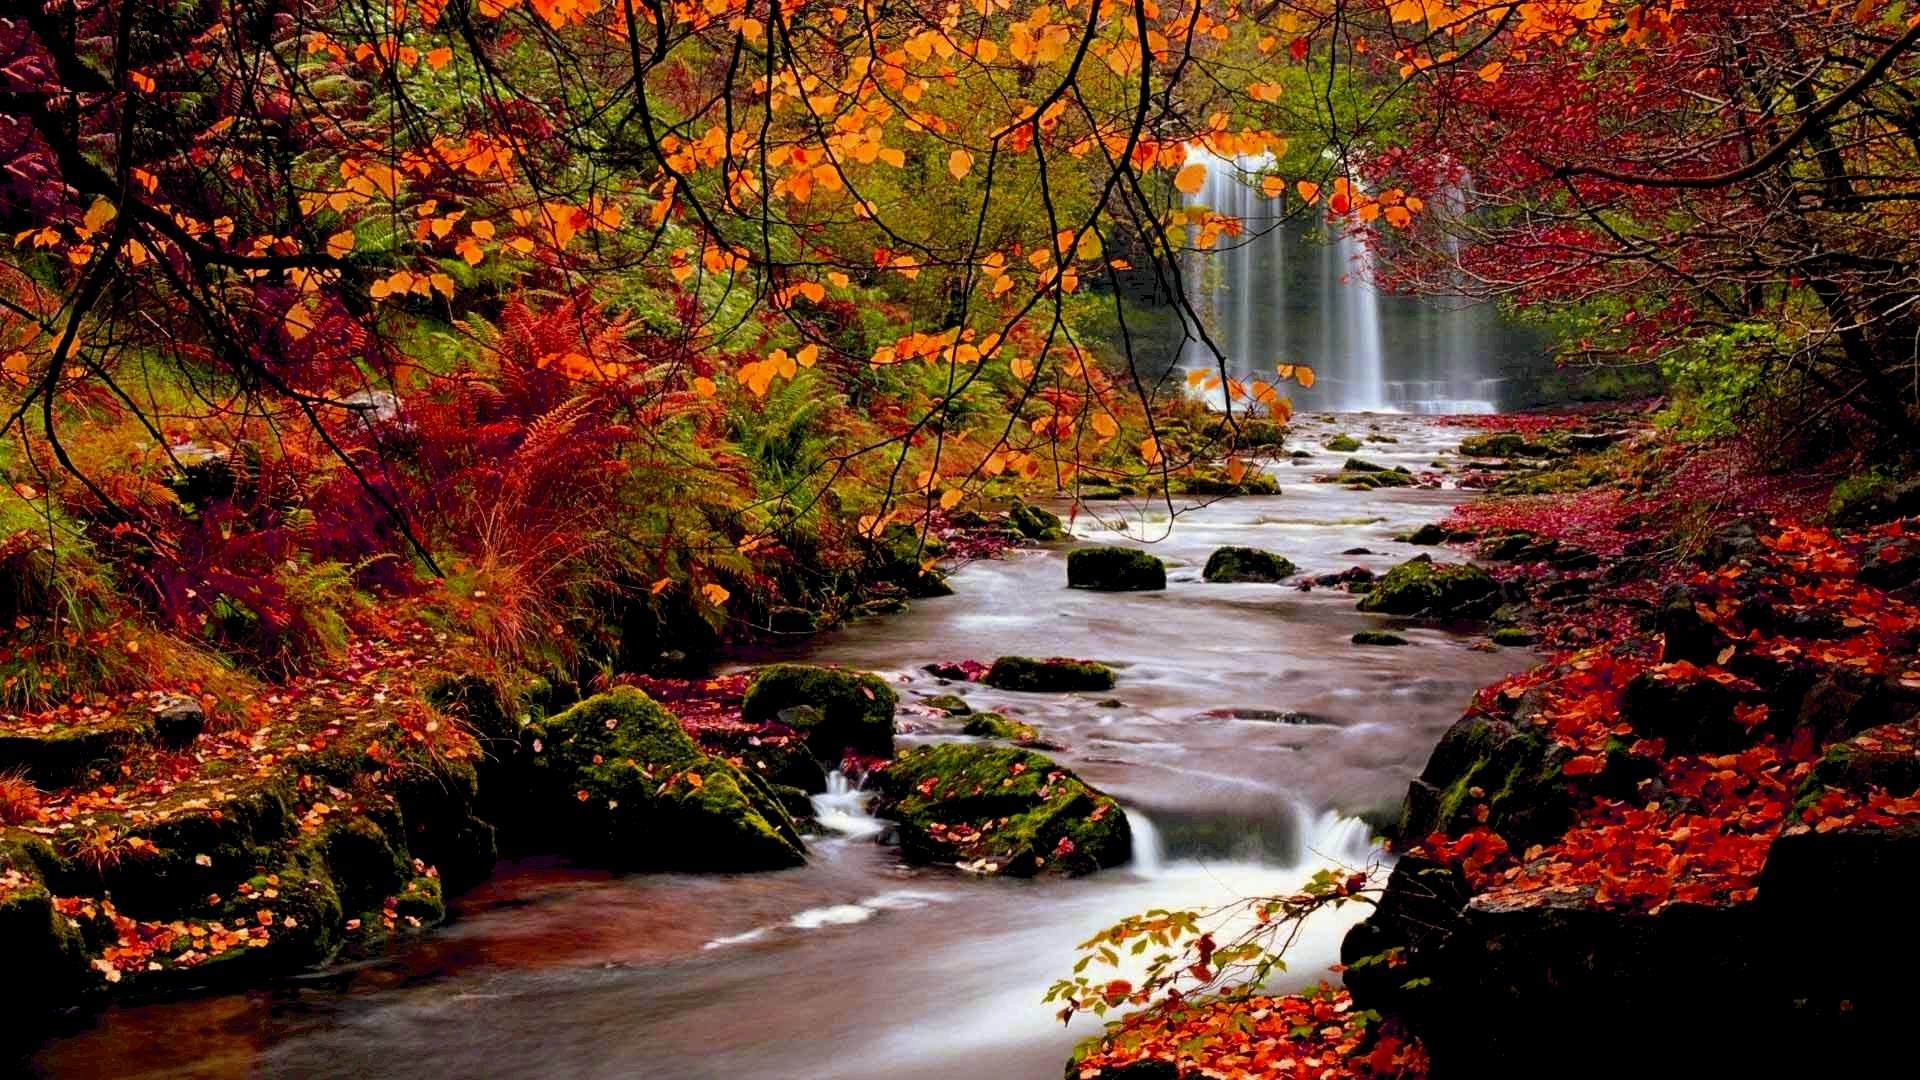 Fall Wallpaper for Desktop 68 images 1920x1080